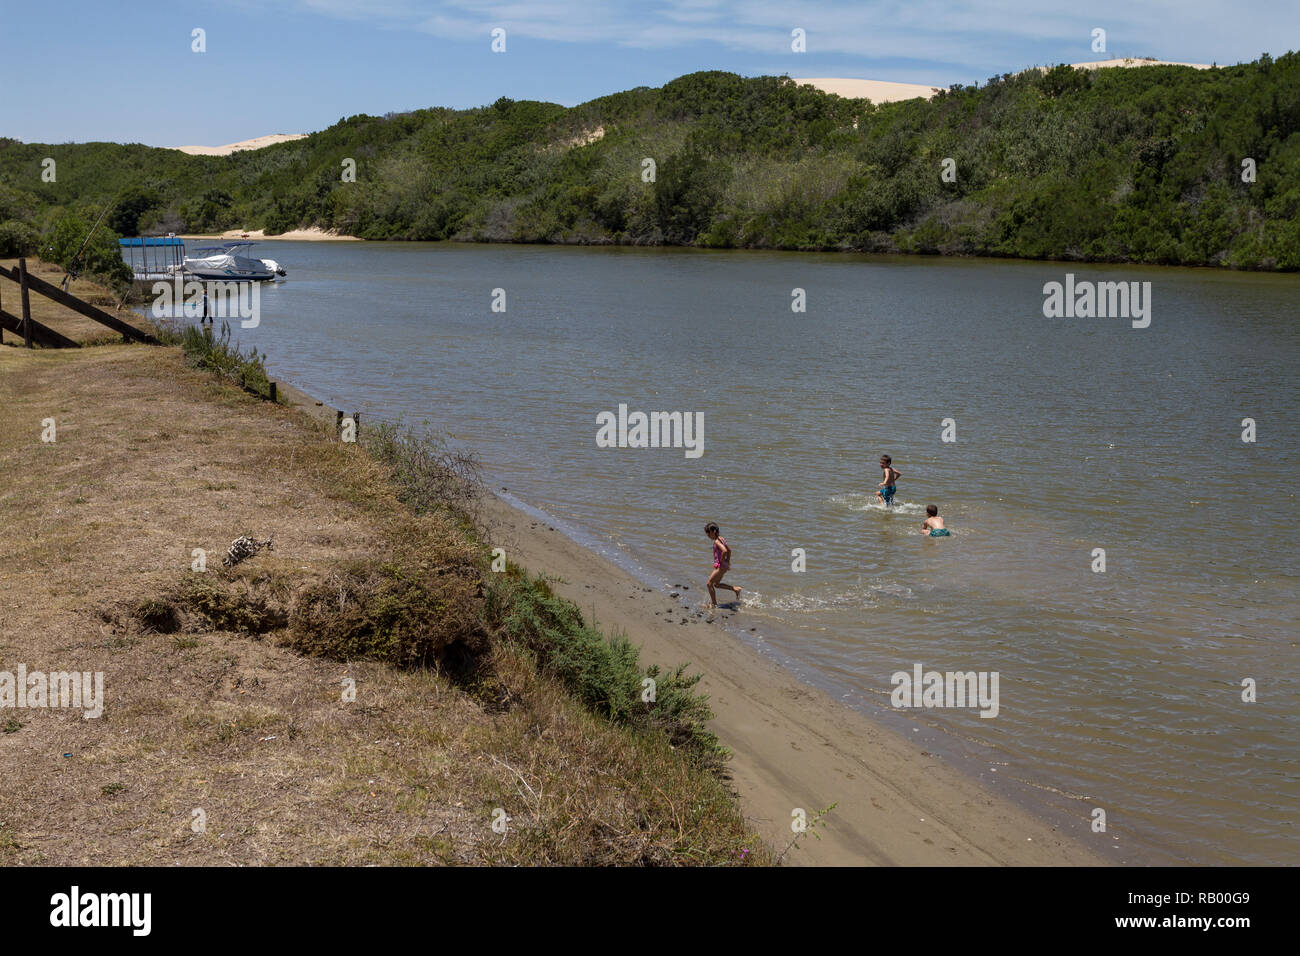 Three young children play in the Sundays River, Colchester, Eastern Cape, South Africa - Stock Image